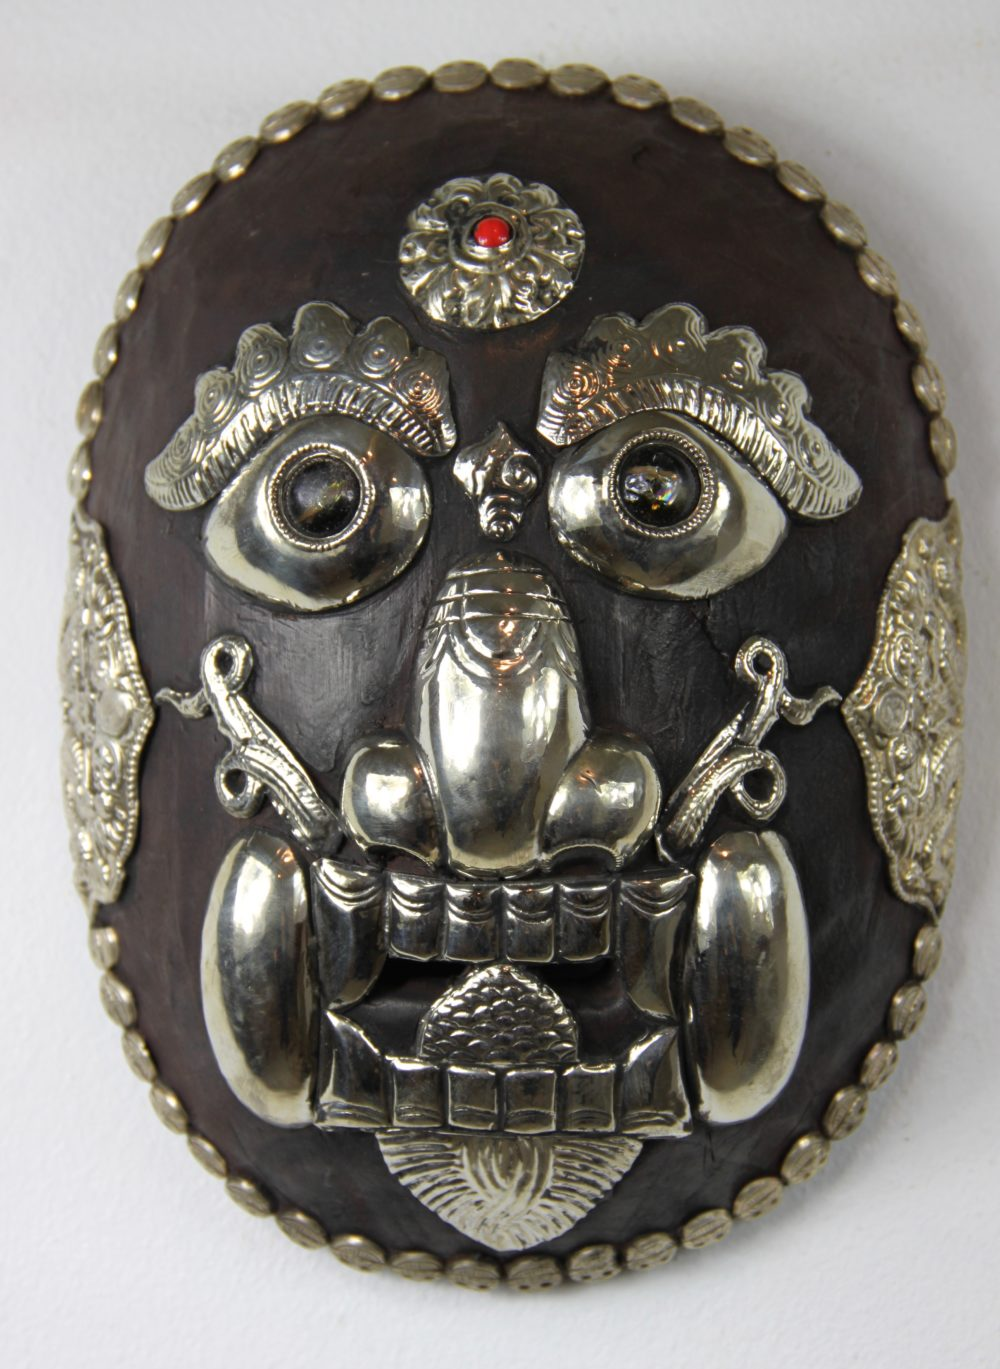 Bhairab Mask for Protection